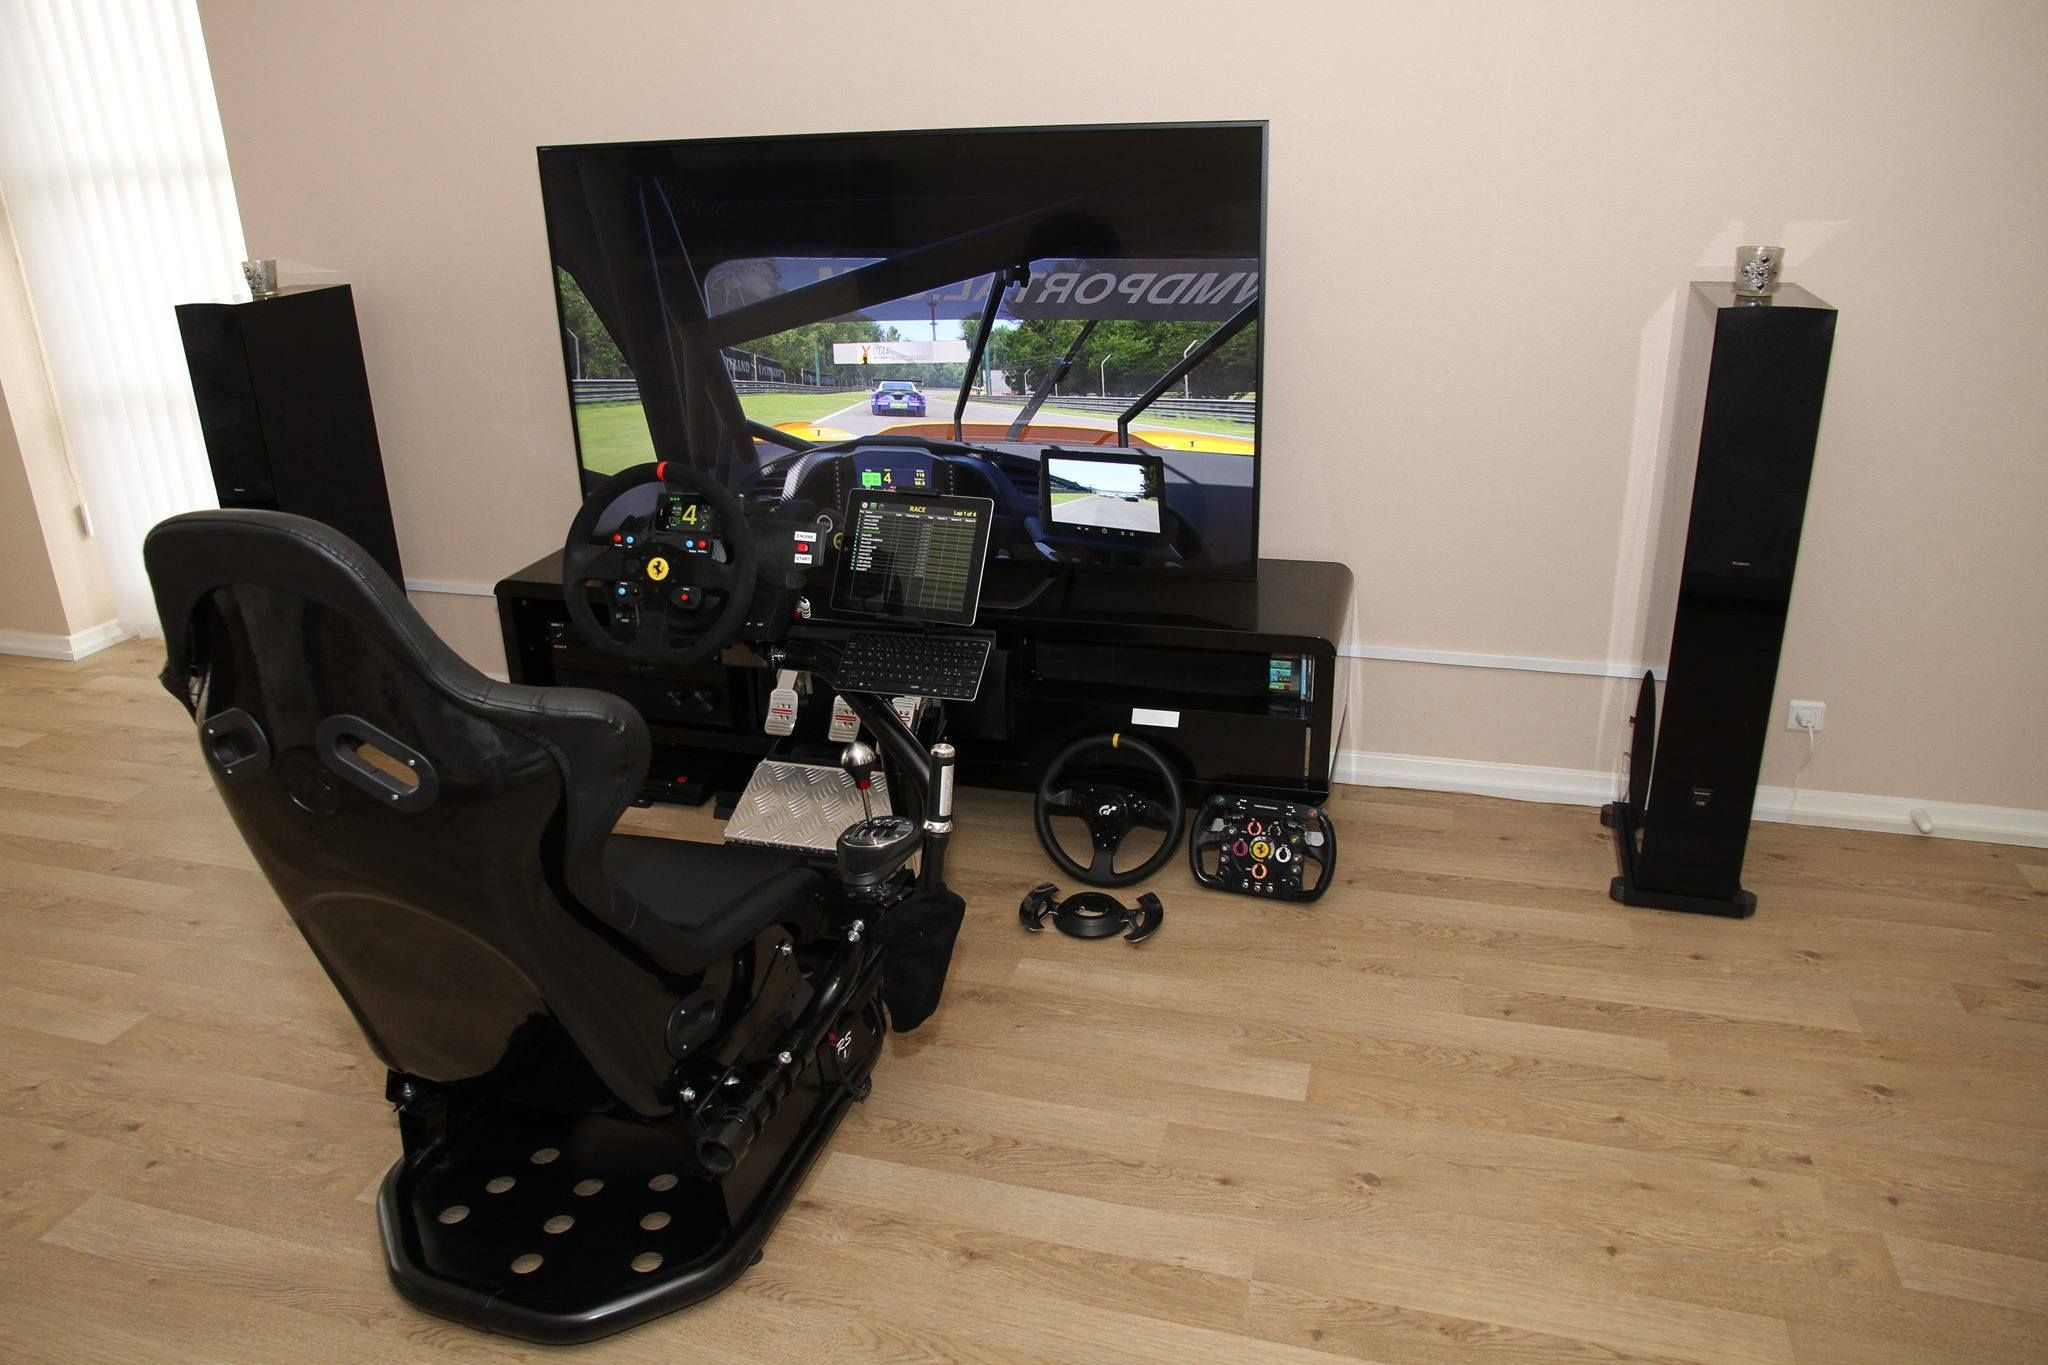 sim racing rig sim racing gaming chair sims racing. Black Bedroom Furniture Sets. Home Design Ideas